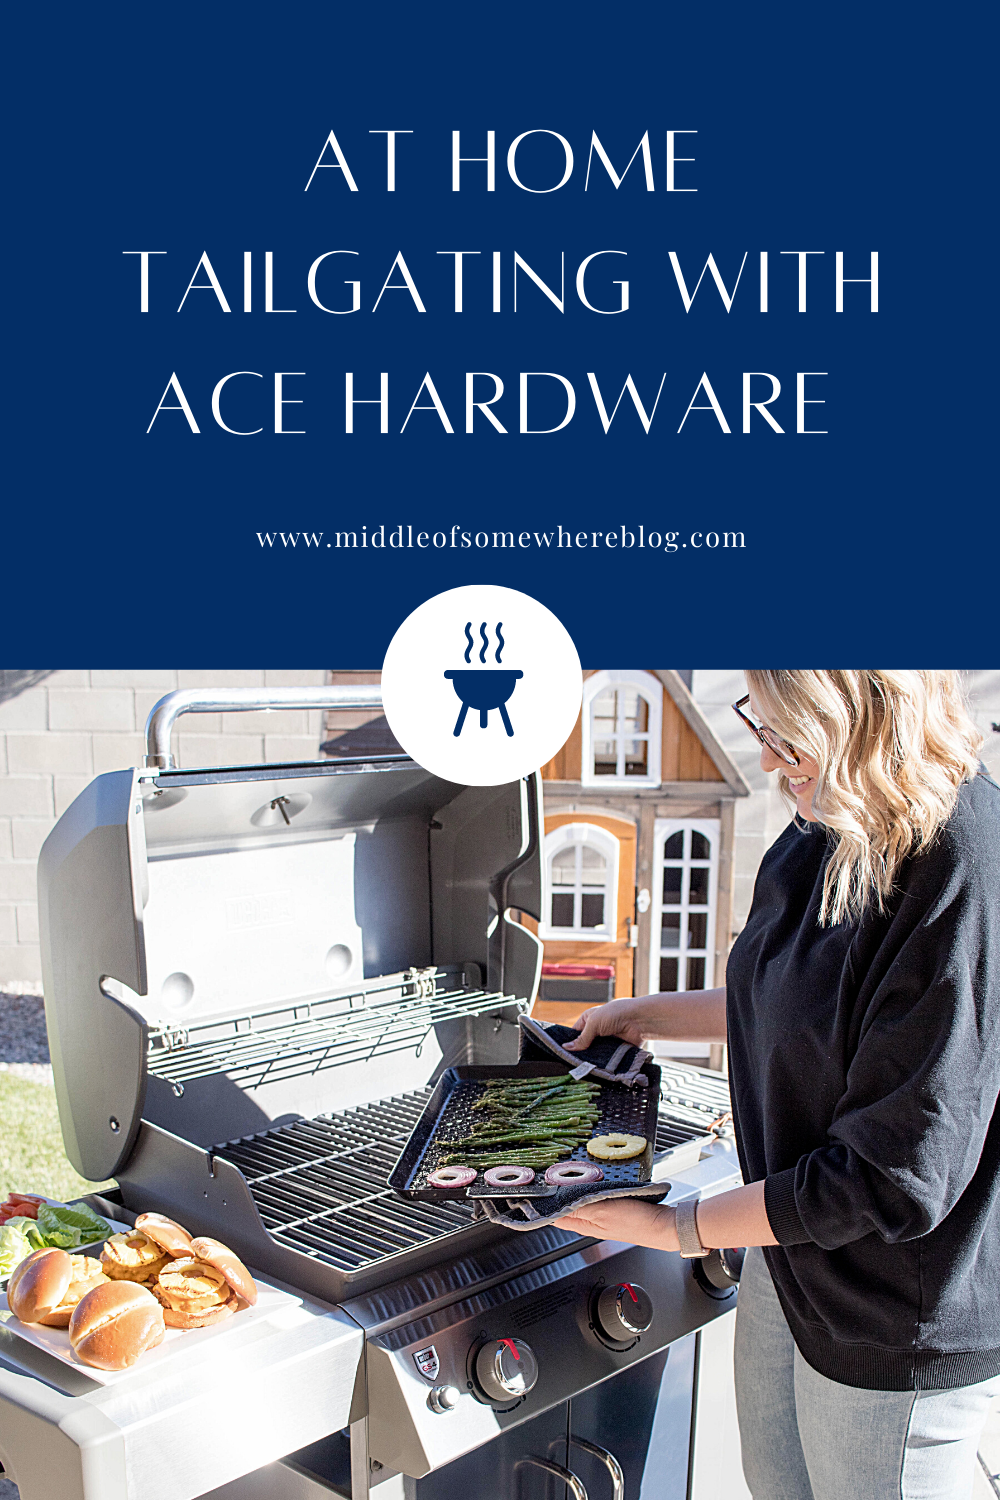 ace hardware weber grills at home tailgating #acepartner #mylocalcace #webergrills #tailgaiting